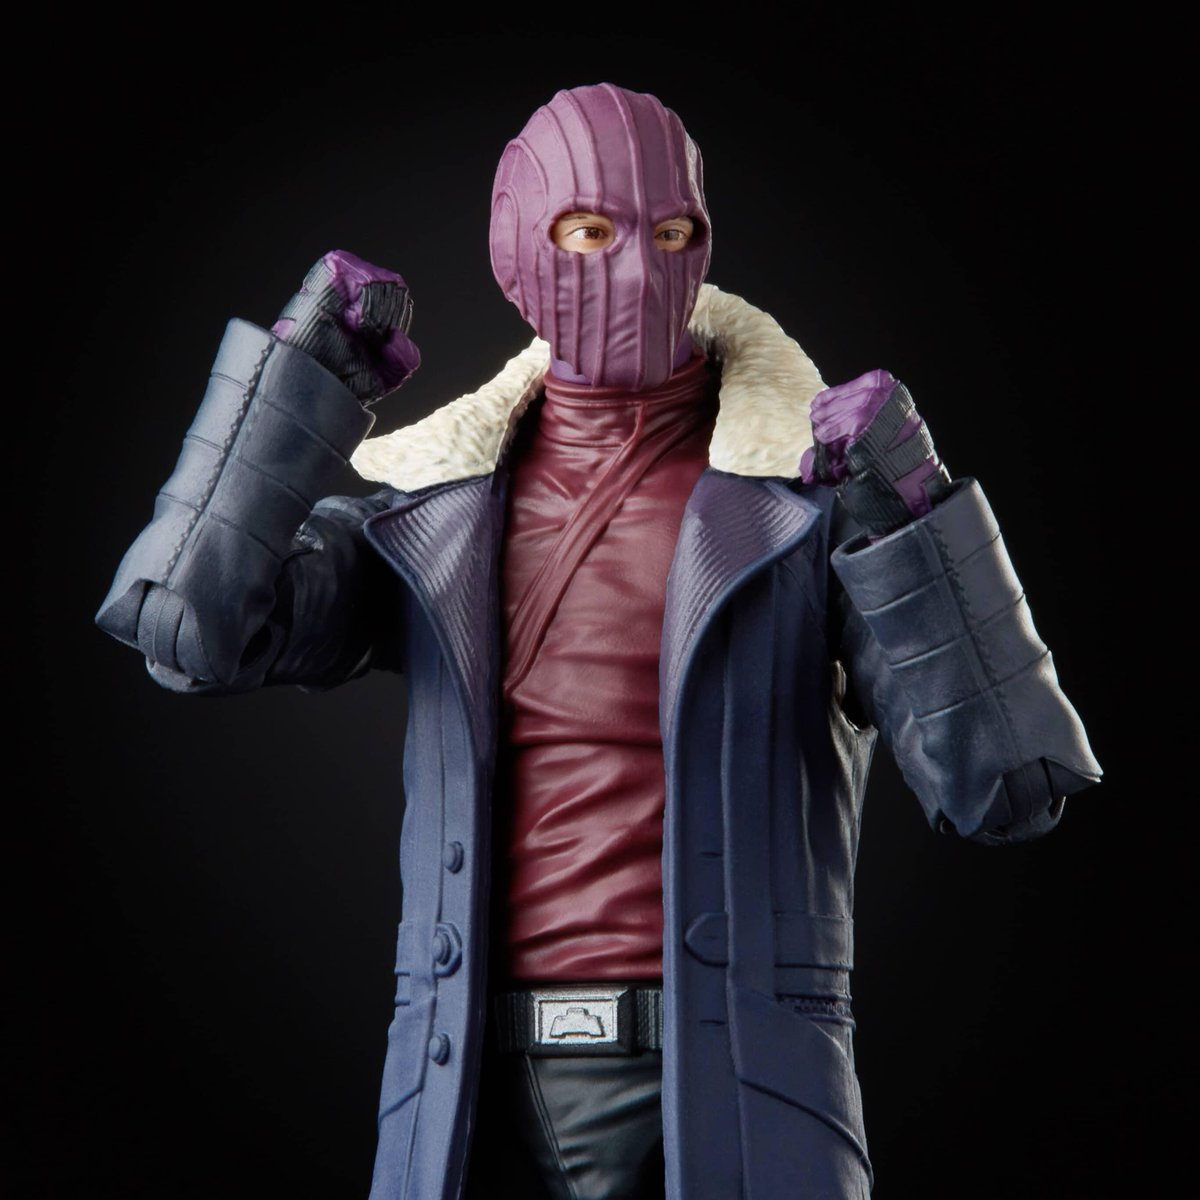 Hasbro Marvel Legends The Falcon and the Winter Soldier – Baron Zemo Figure Pre-Orders On Amazon